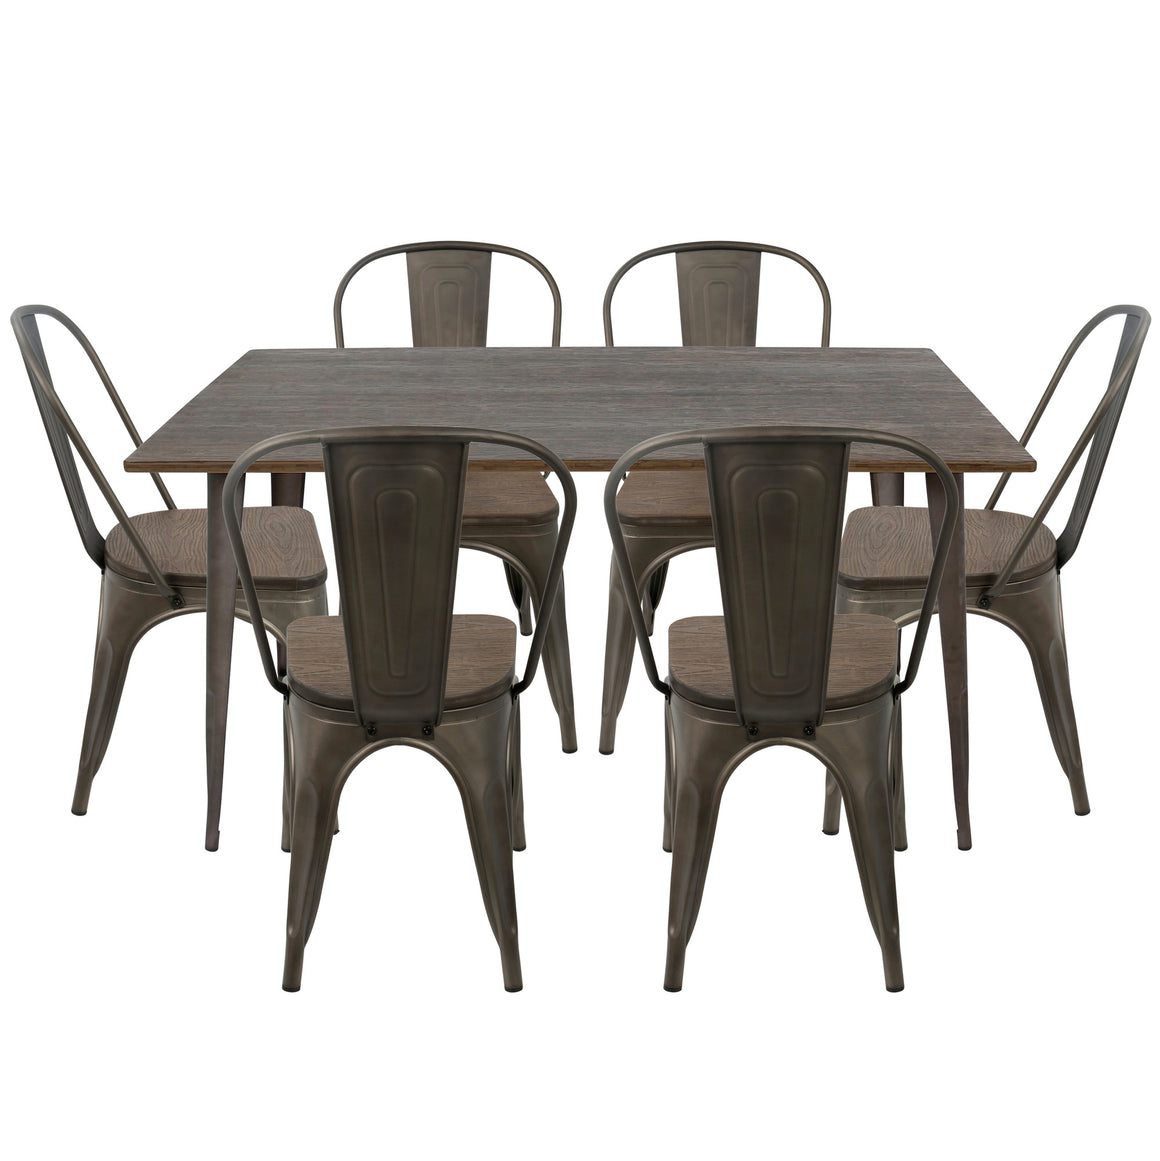 Oregon 7-Piece Industrial-Farmhouse Dining Set in Antique and Espresso by LumiSource